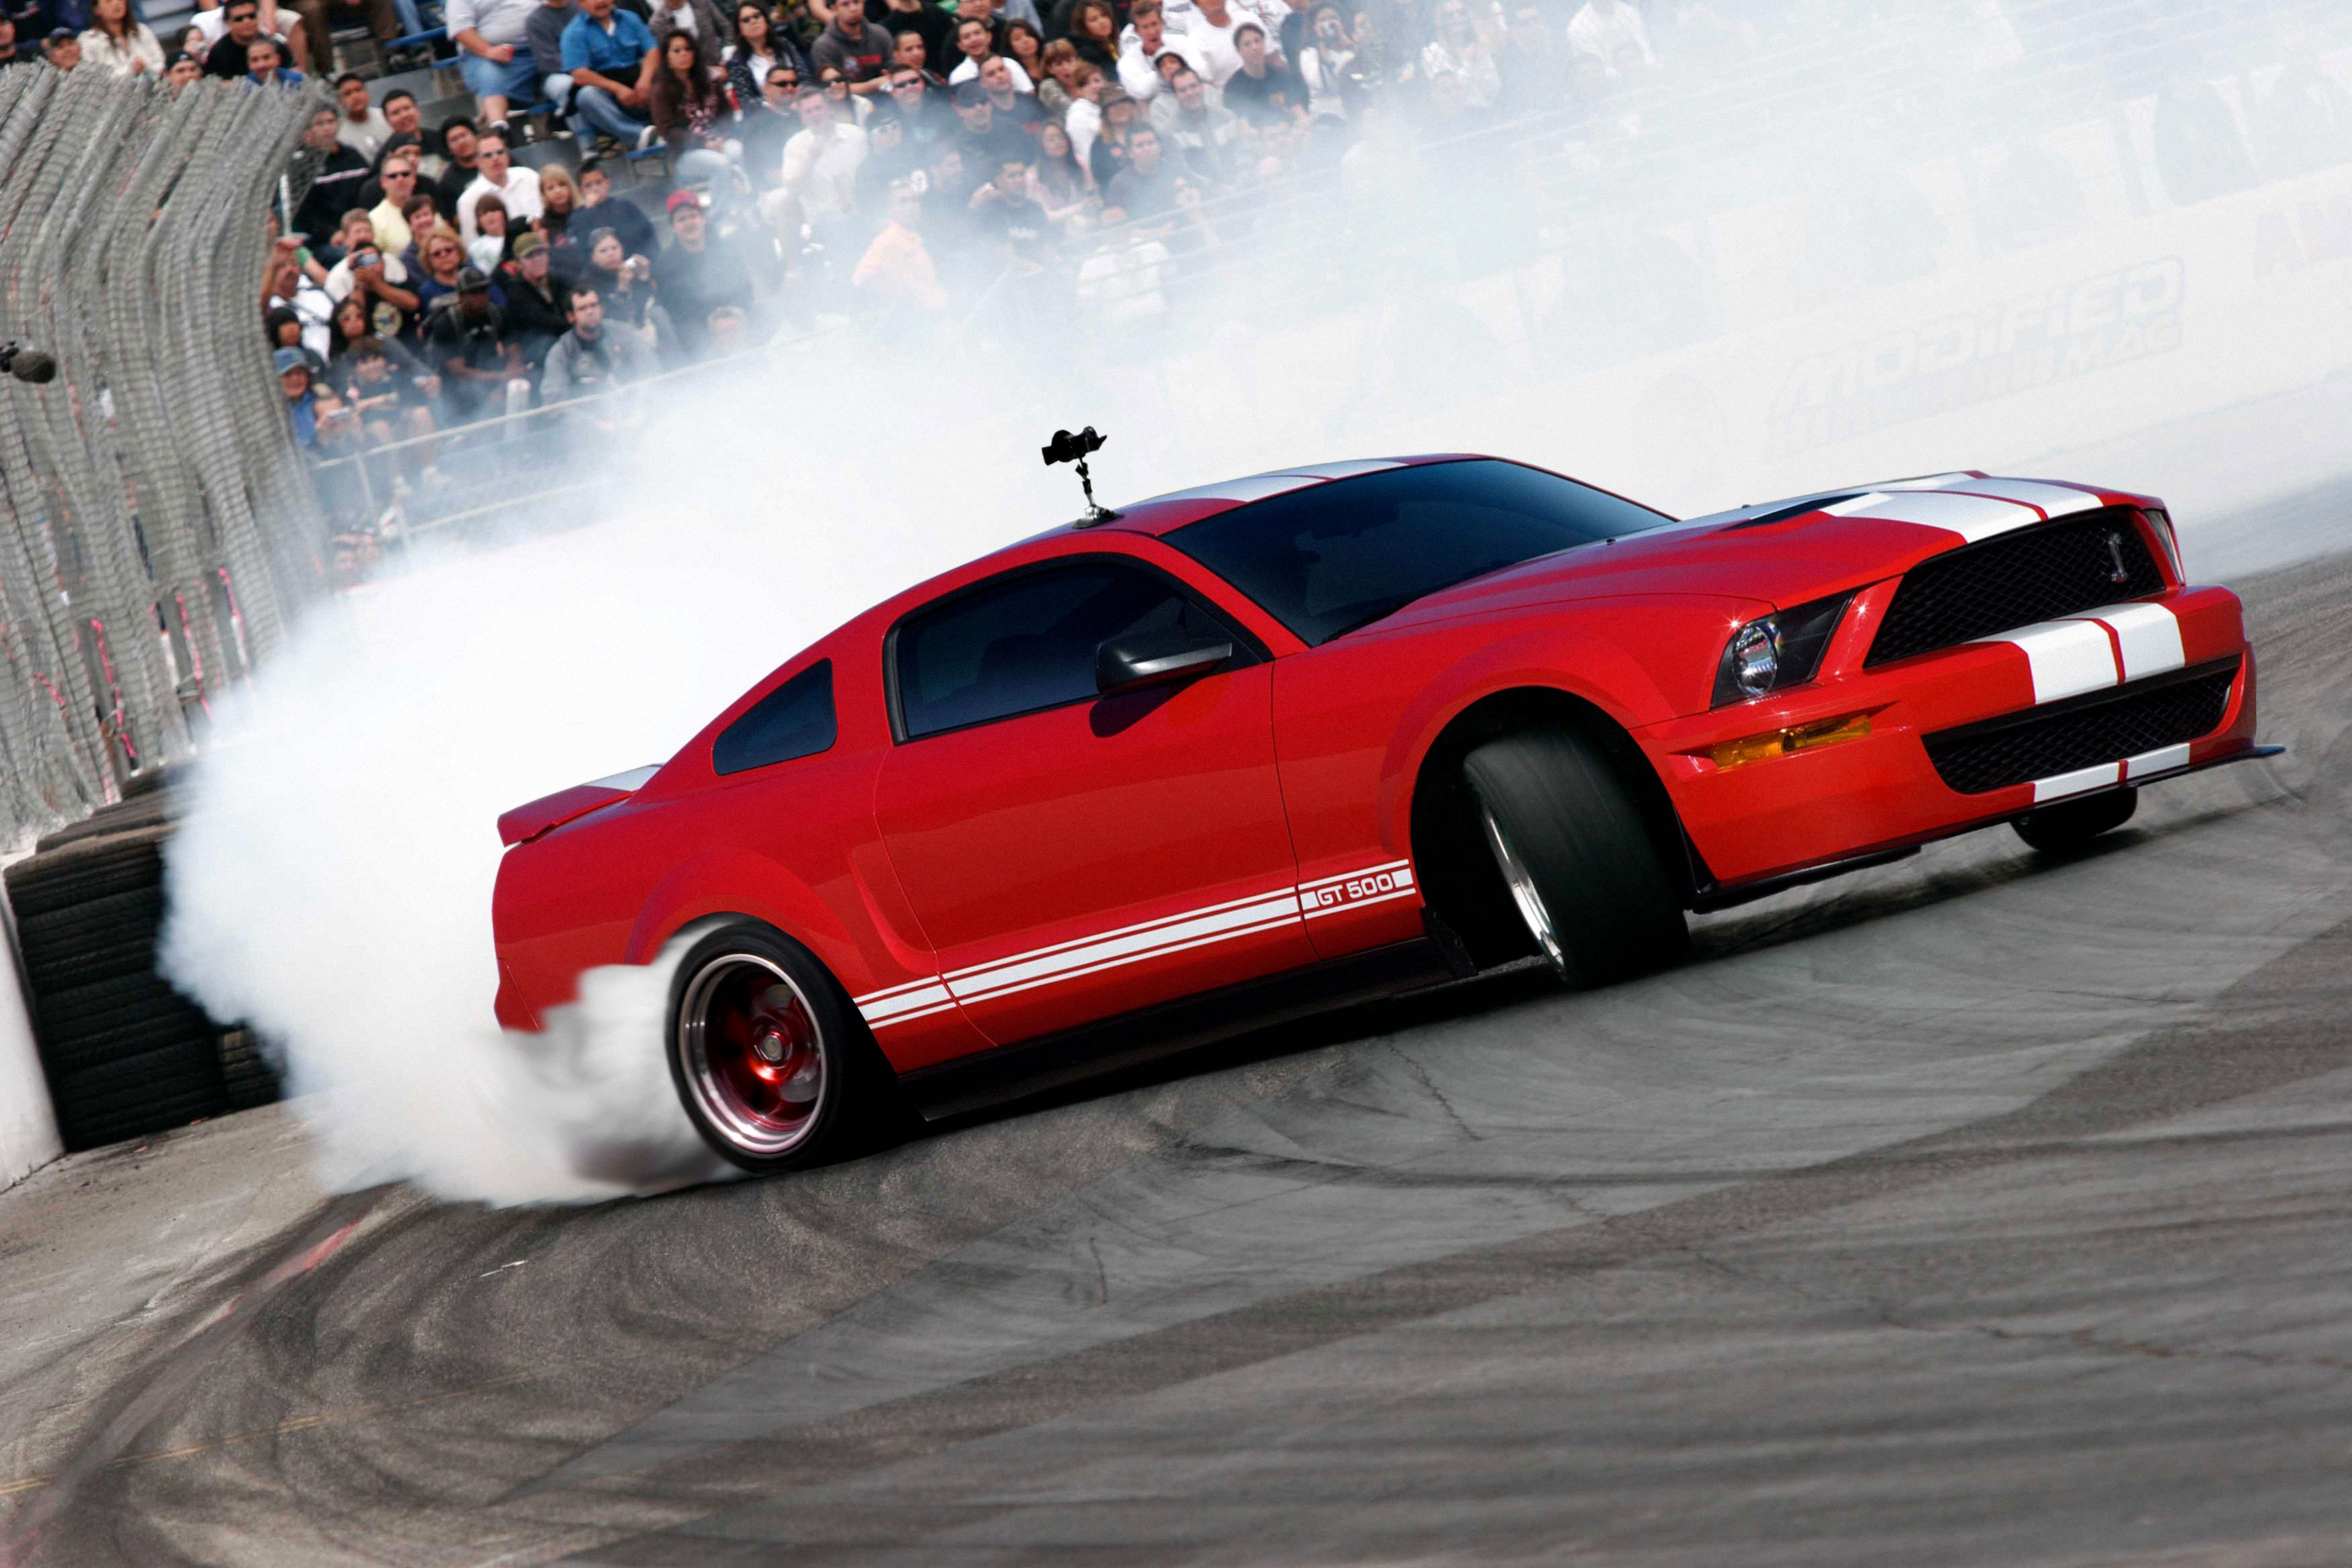 73 Ford Mustang New Car Specs And Price 2019 2020 F250 7 3l Wiring Diagram Blower The 25 Best Drift Ideas On Pinterest